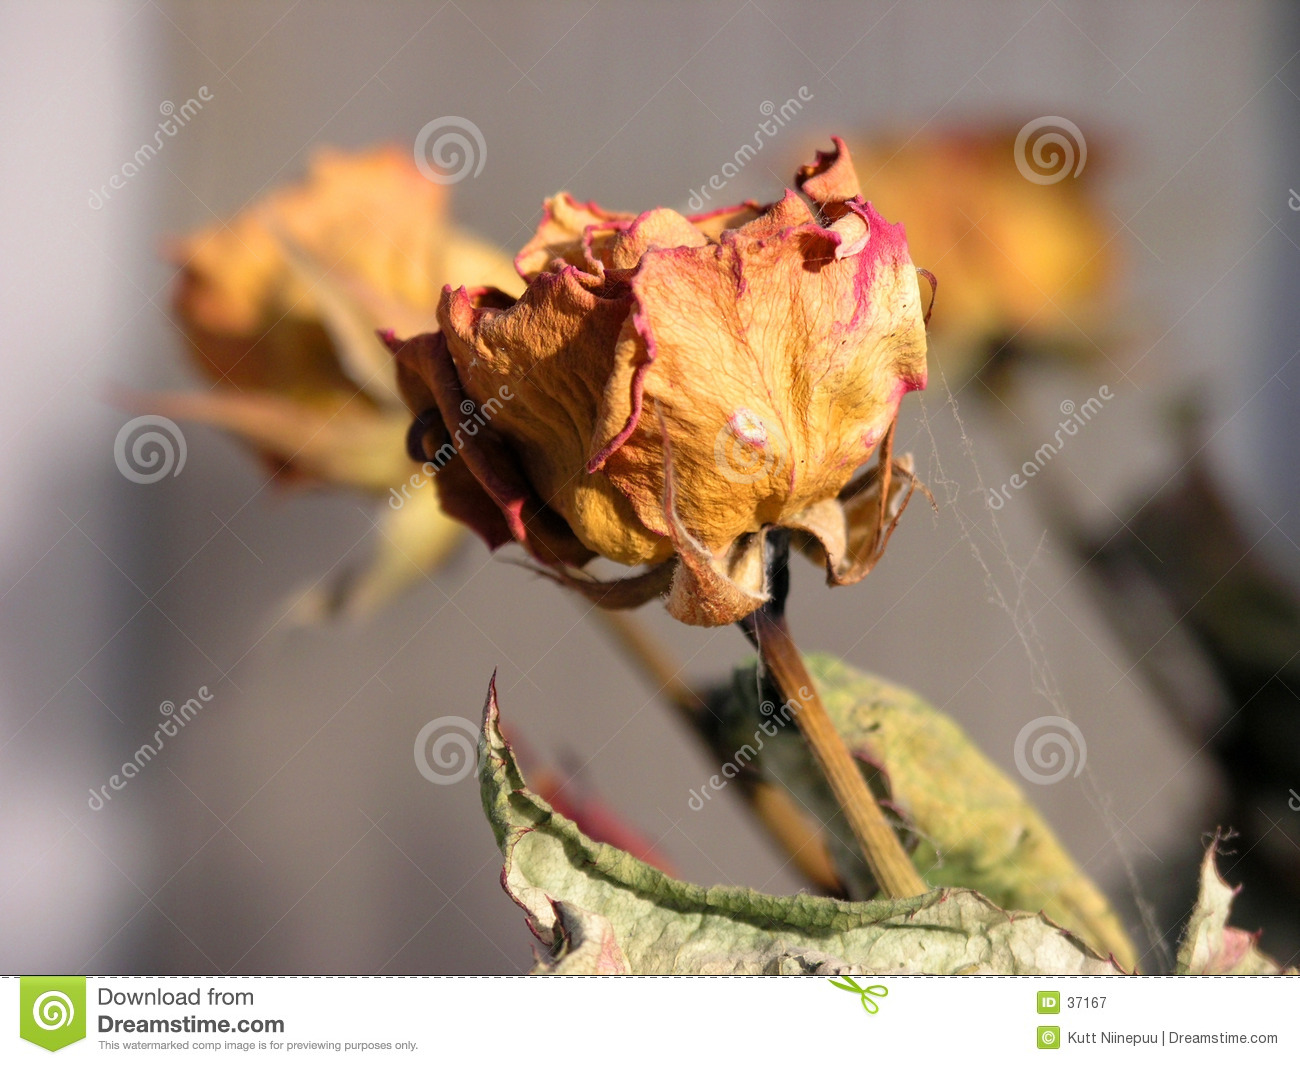 Was a rose...